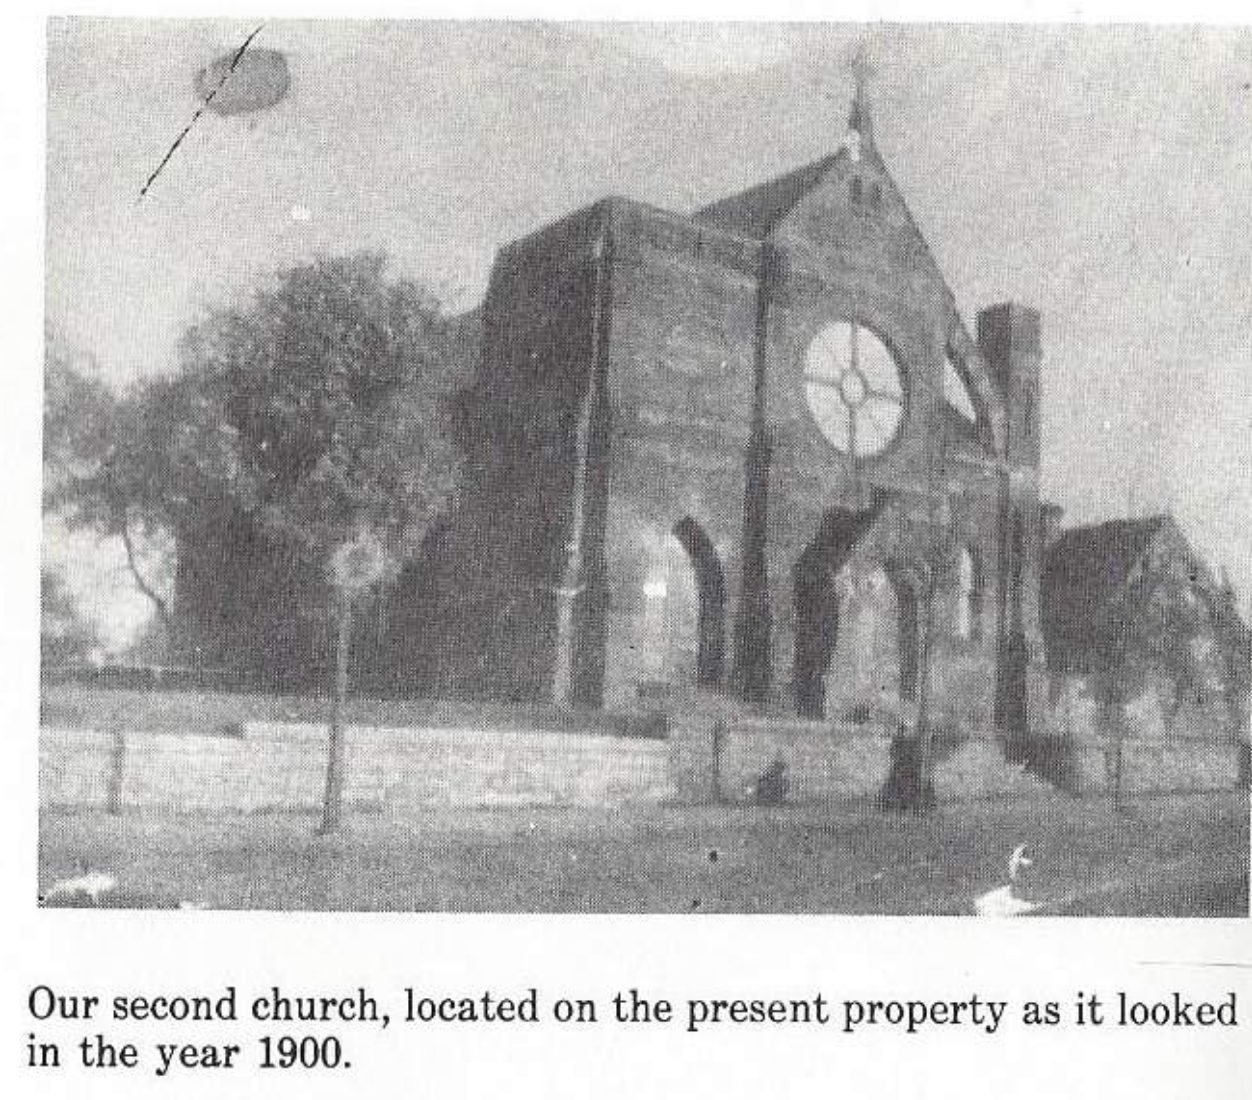 The second St. Joseph Church in 1900